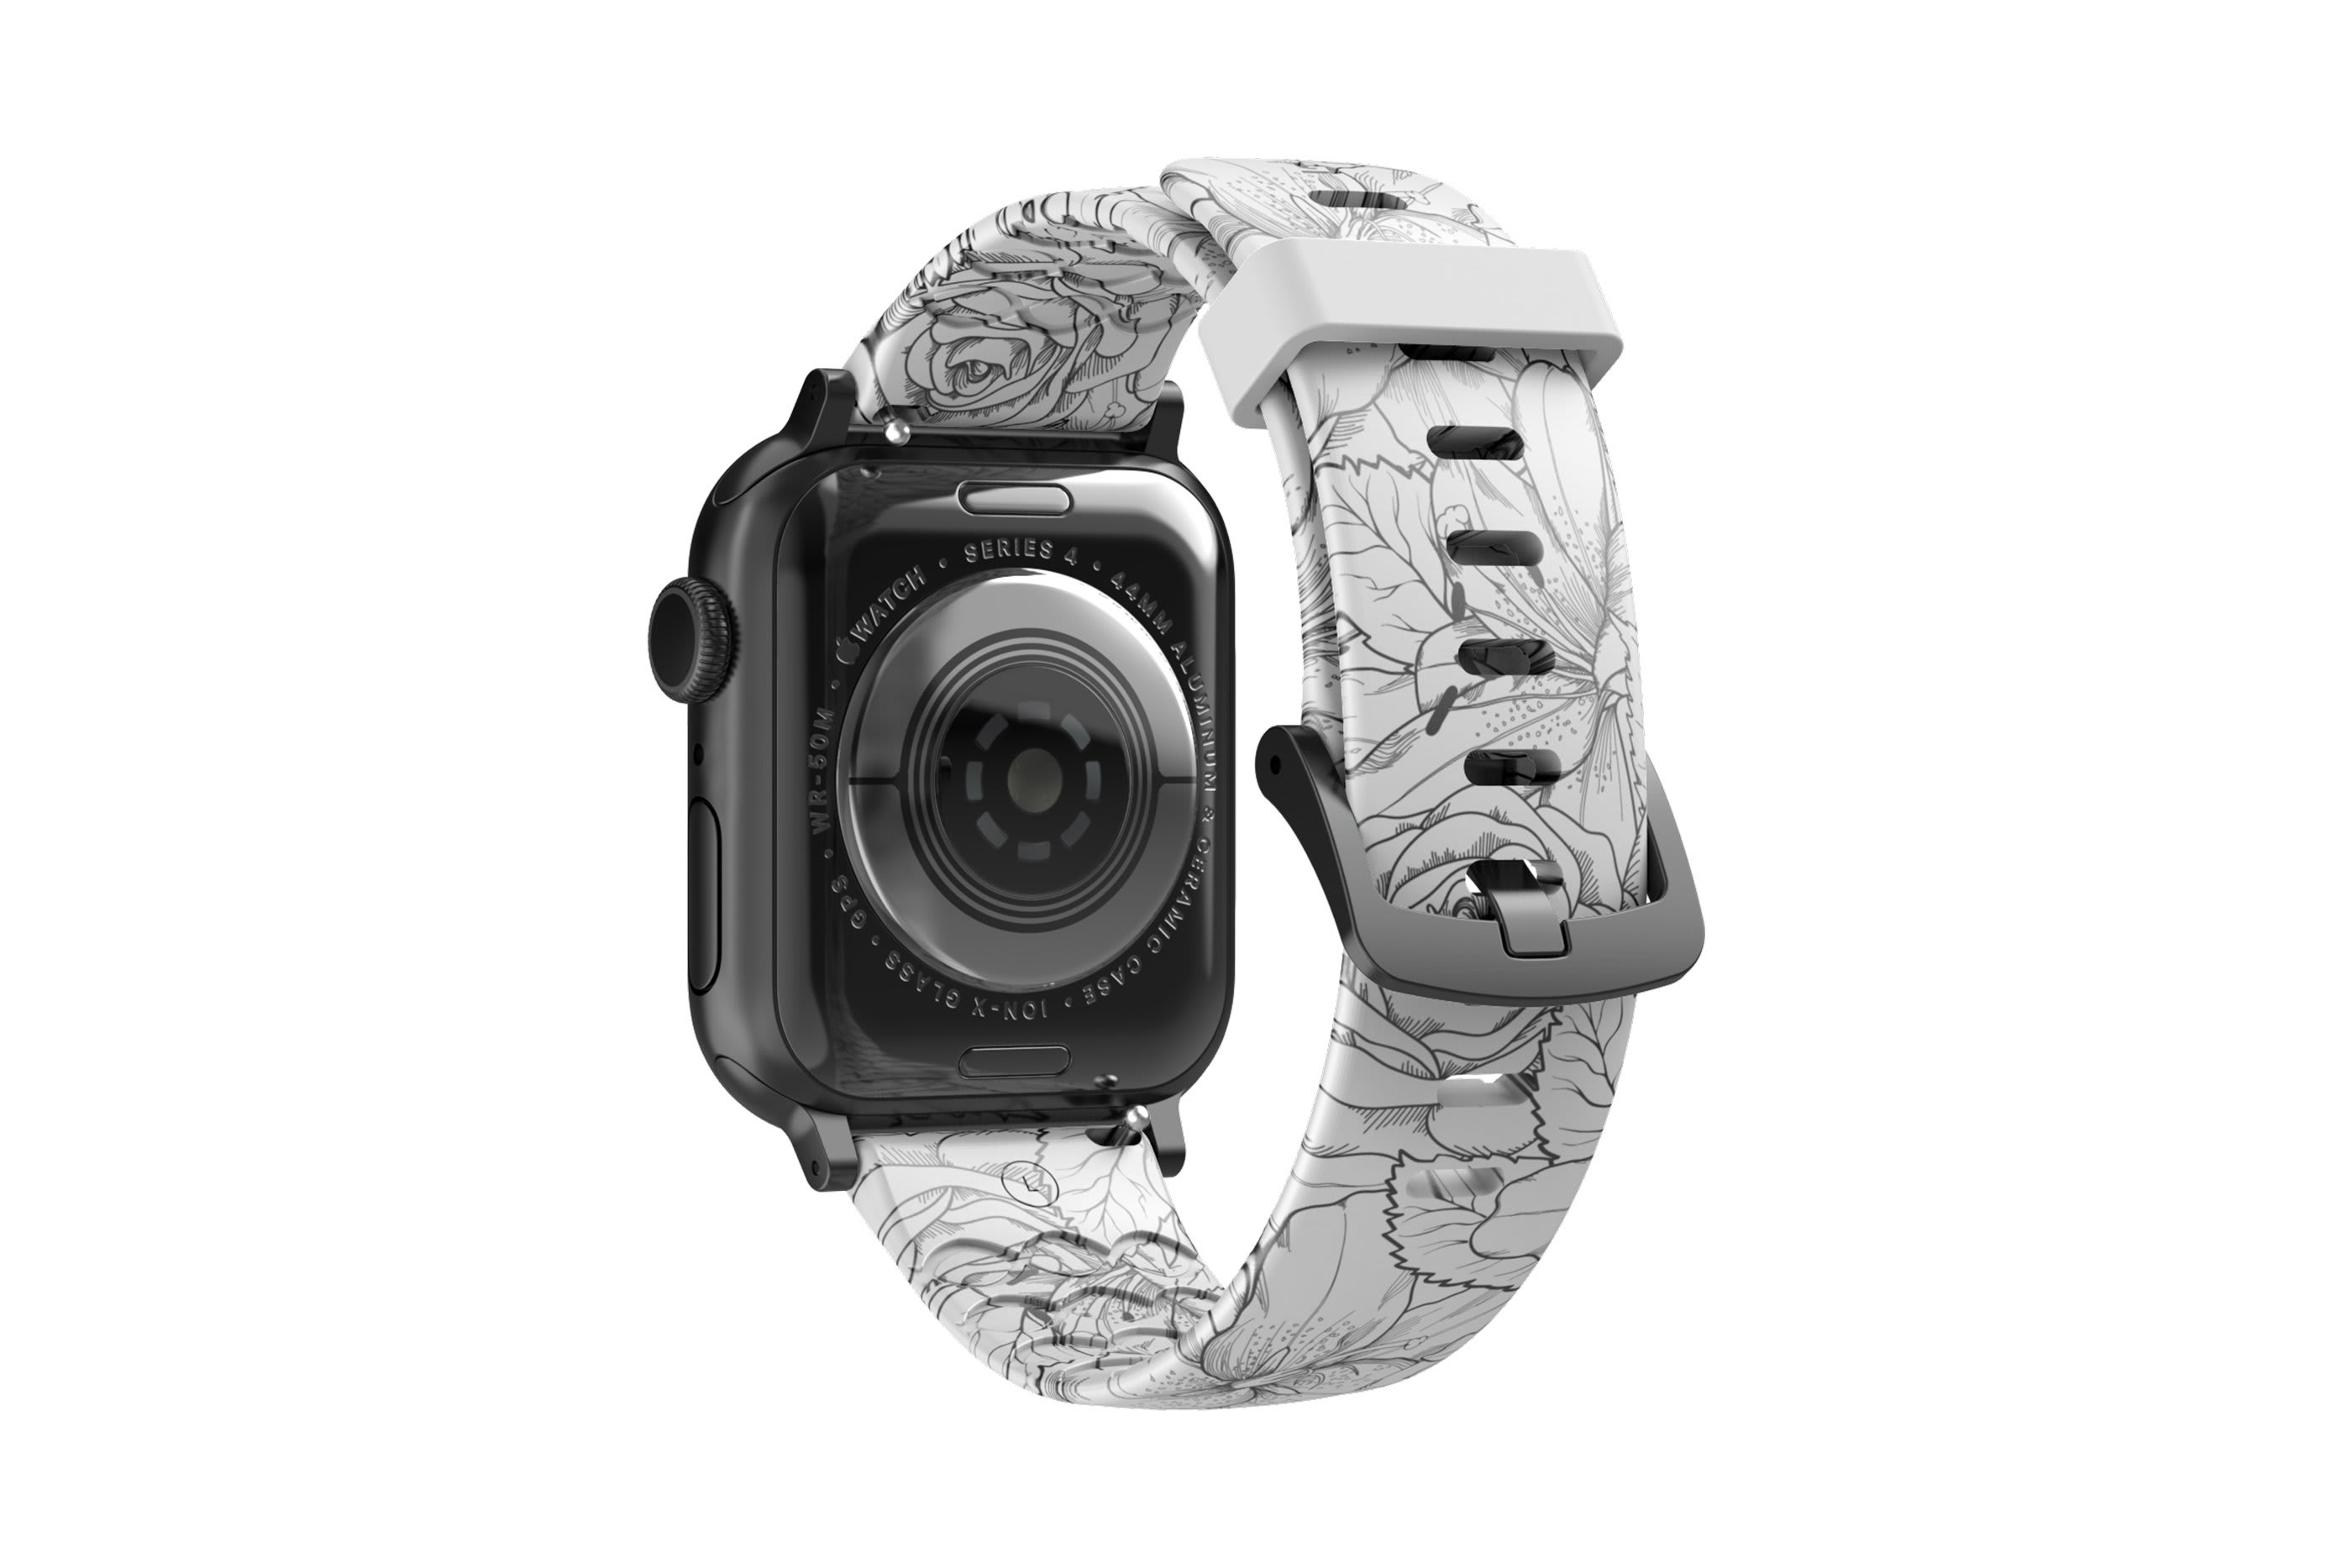 Winter Rose Apple Watch Band with gray hardware viewed from rear